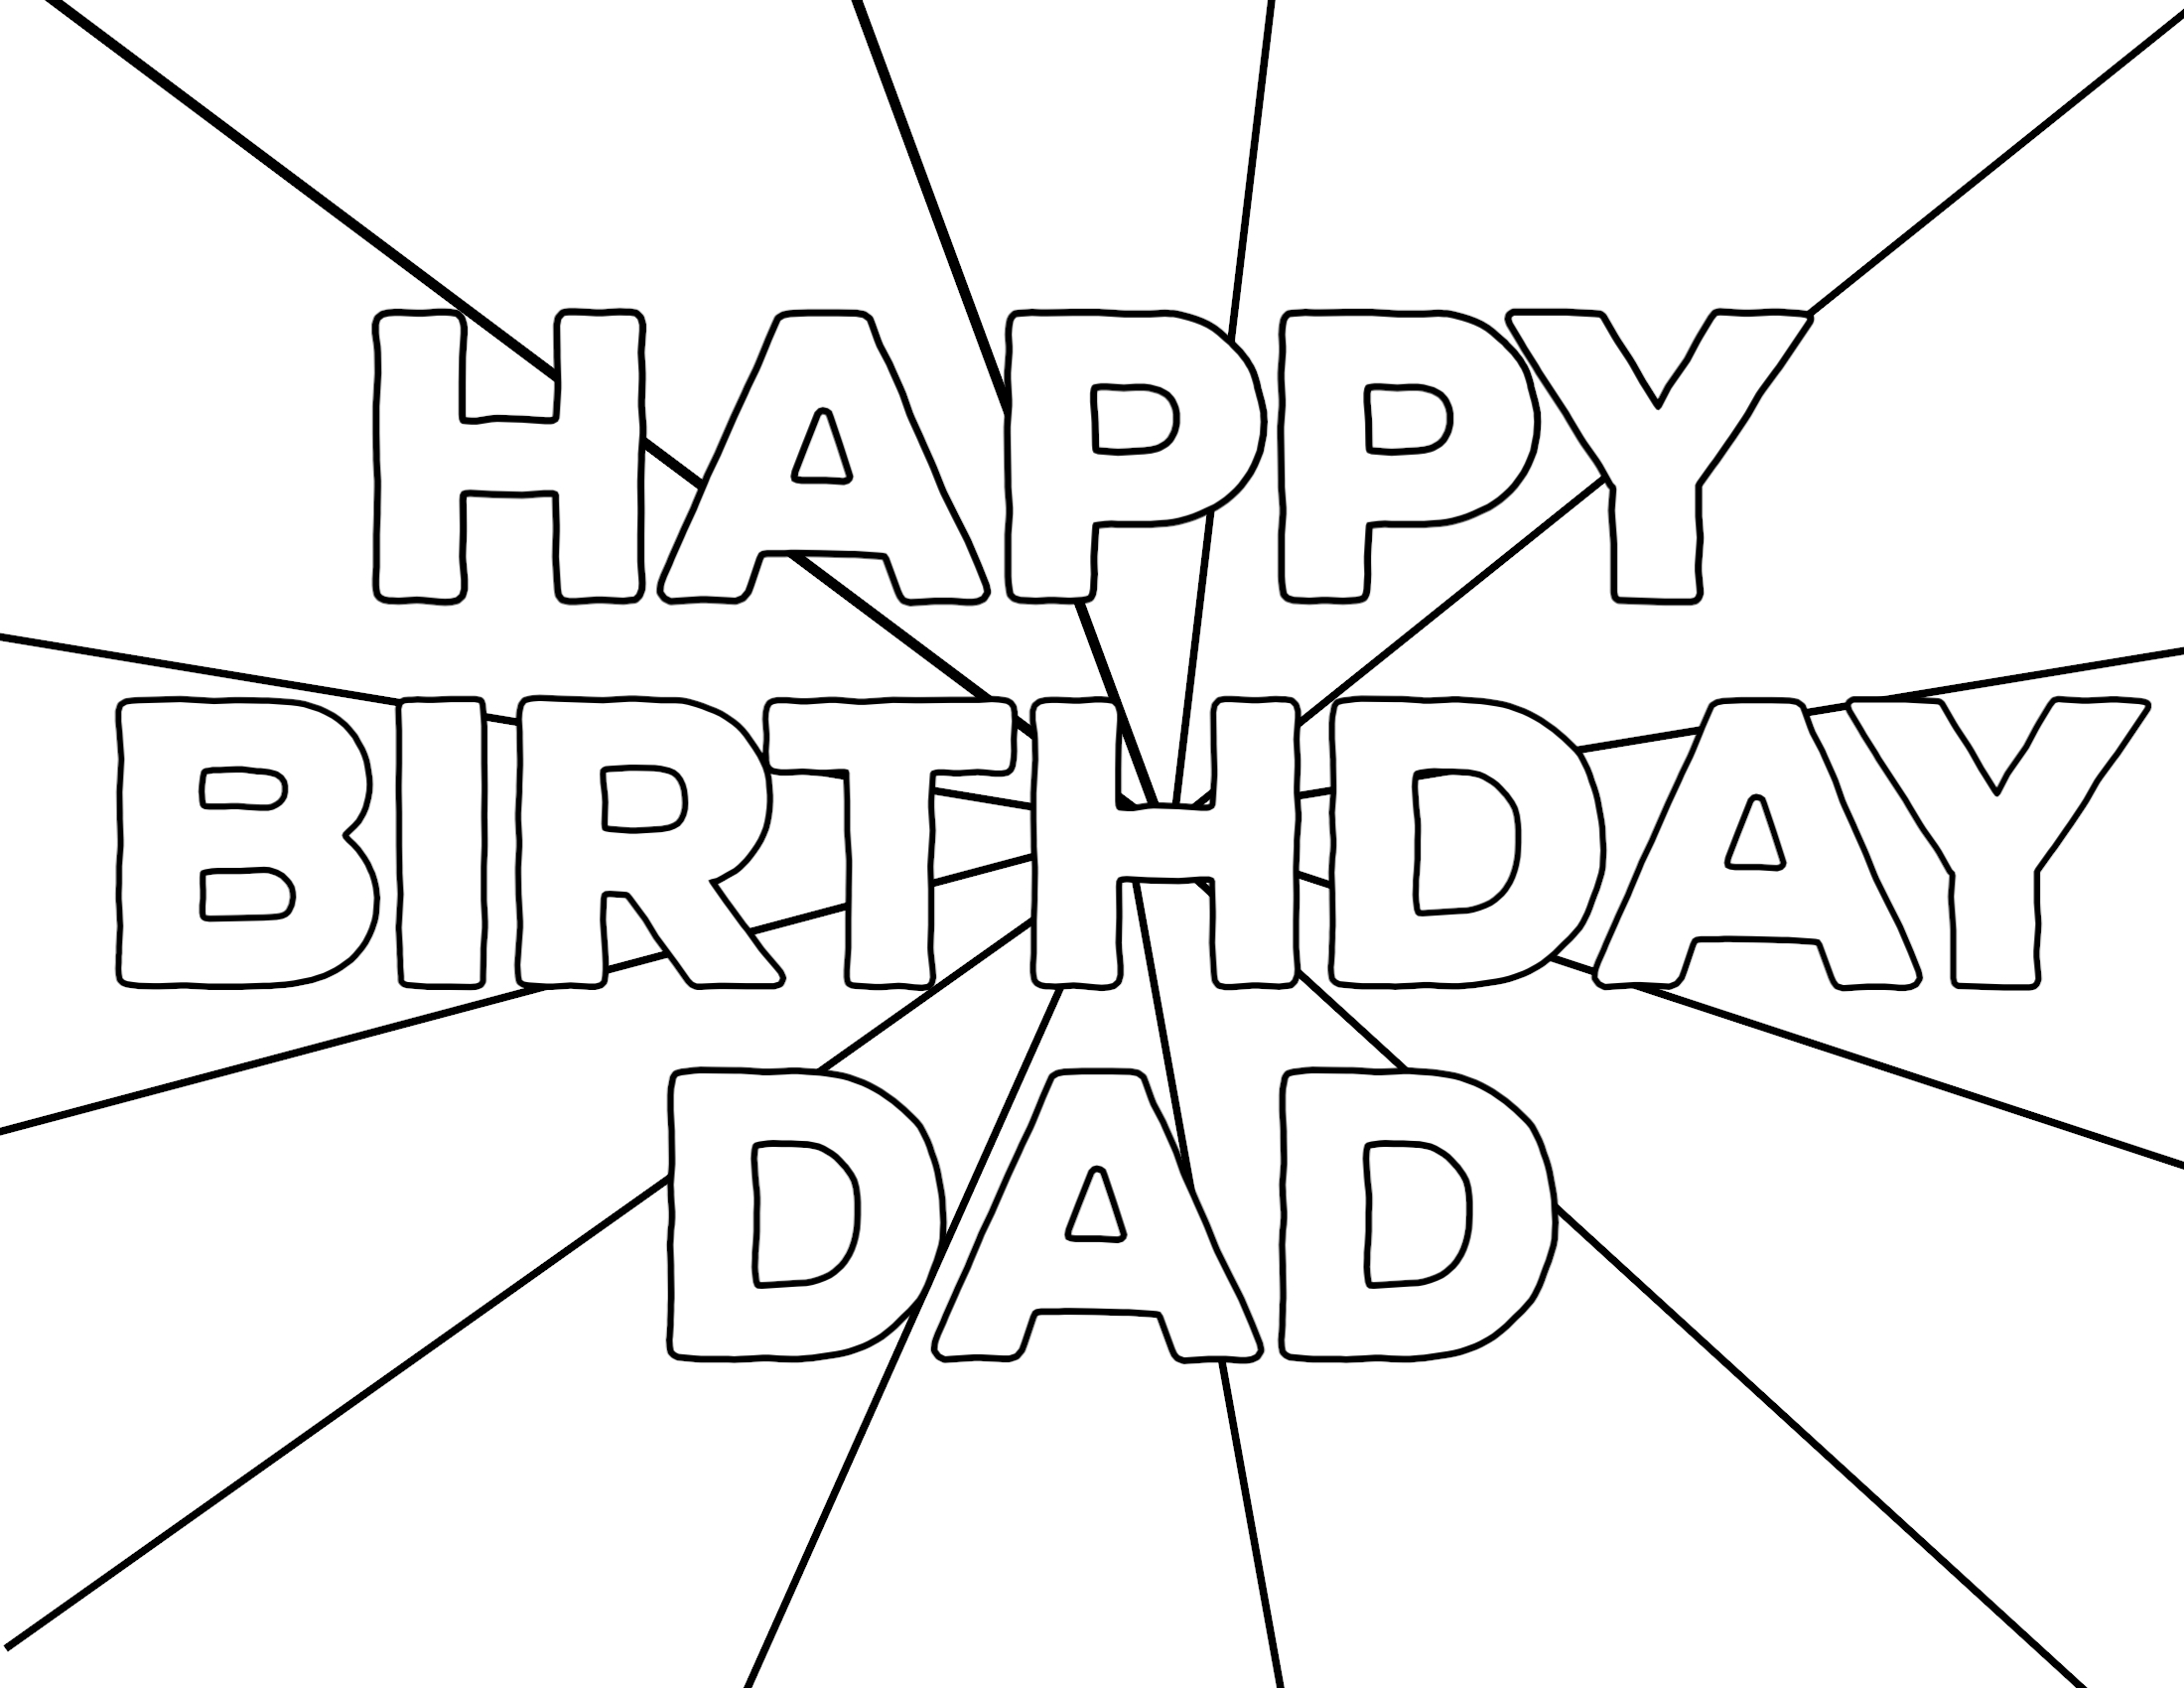 This is a graphic of Geeky Happy Birthday Dad Coloring Sheet